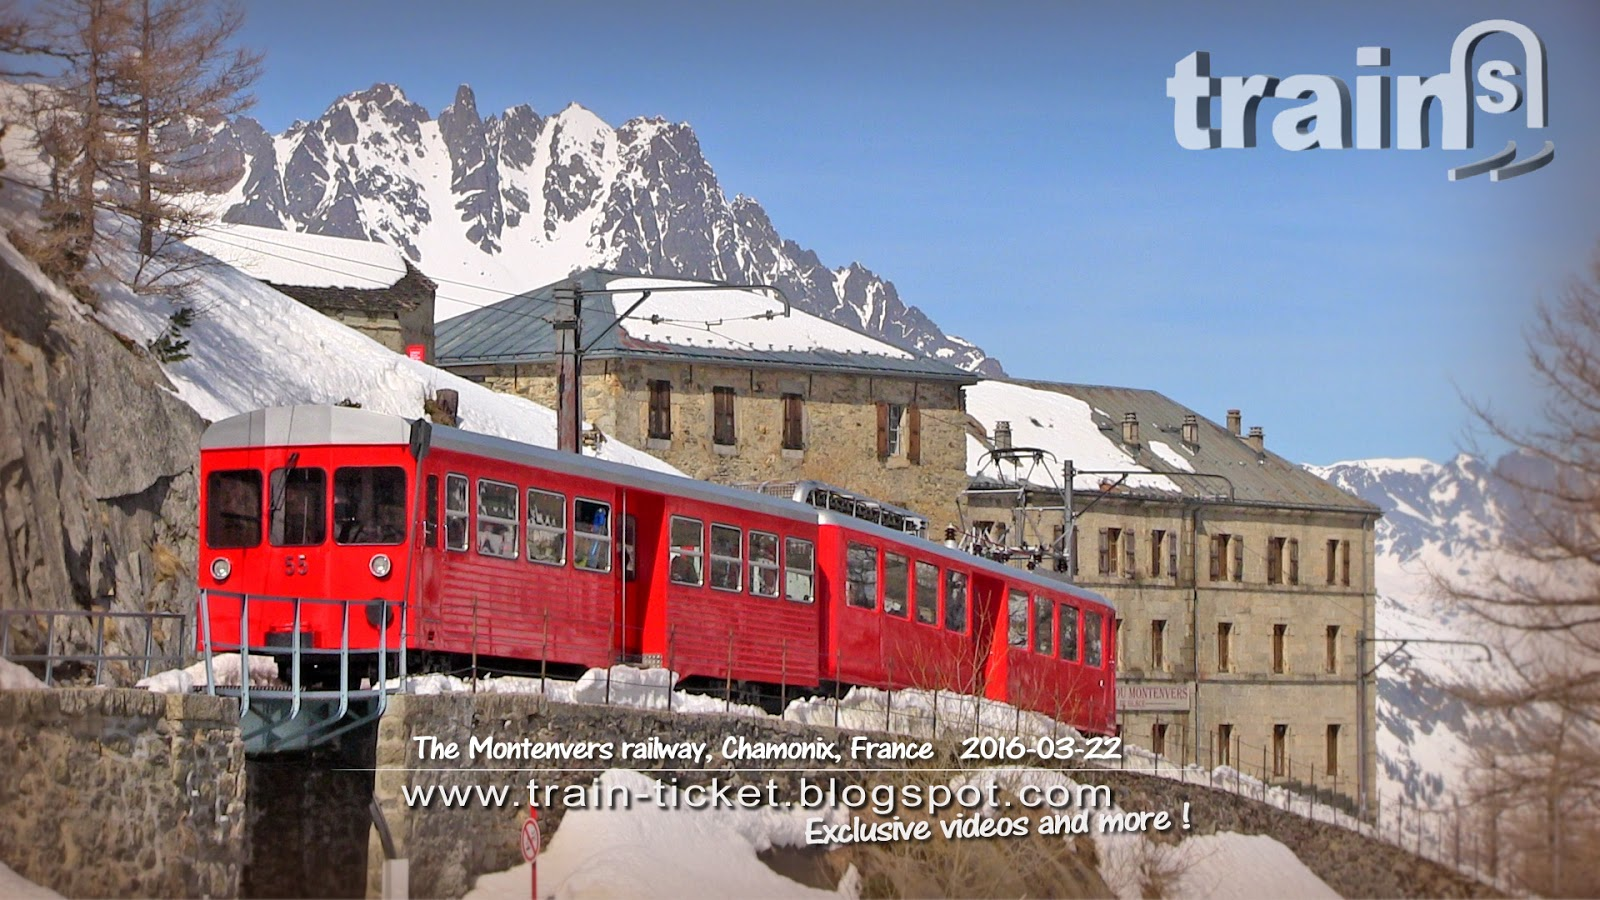 Hotel Montenvers France The Montenvers Railway Chamonix Part 1 2 Train